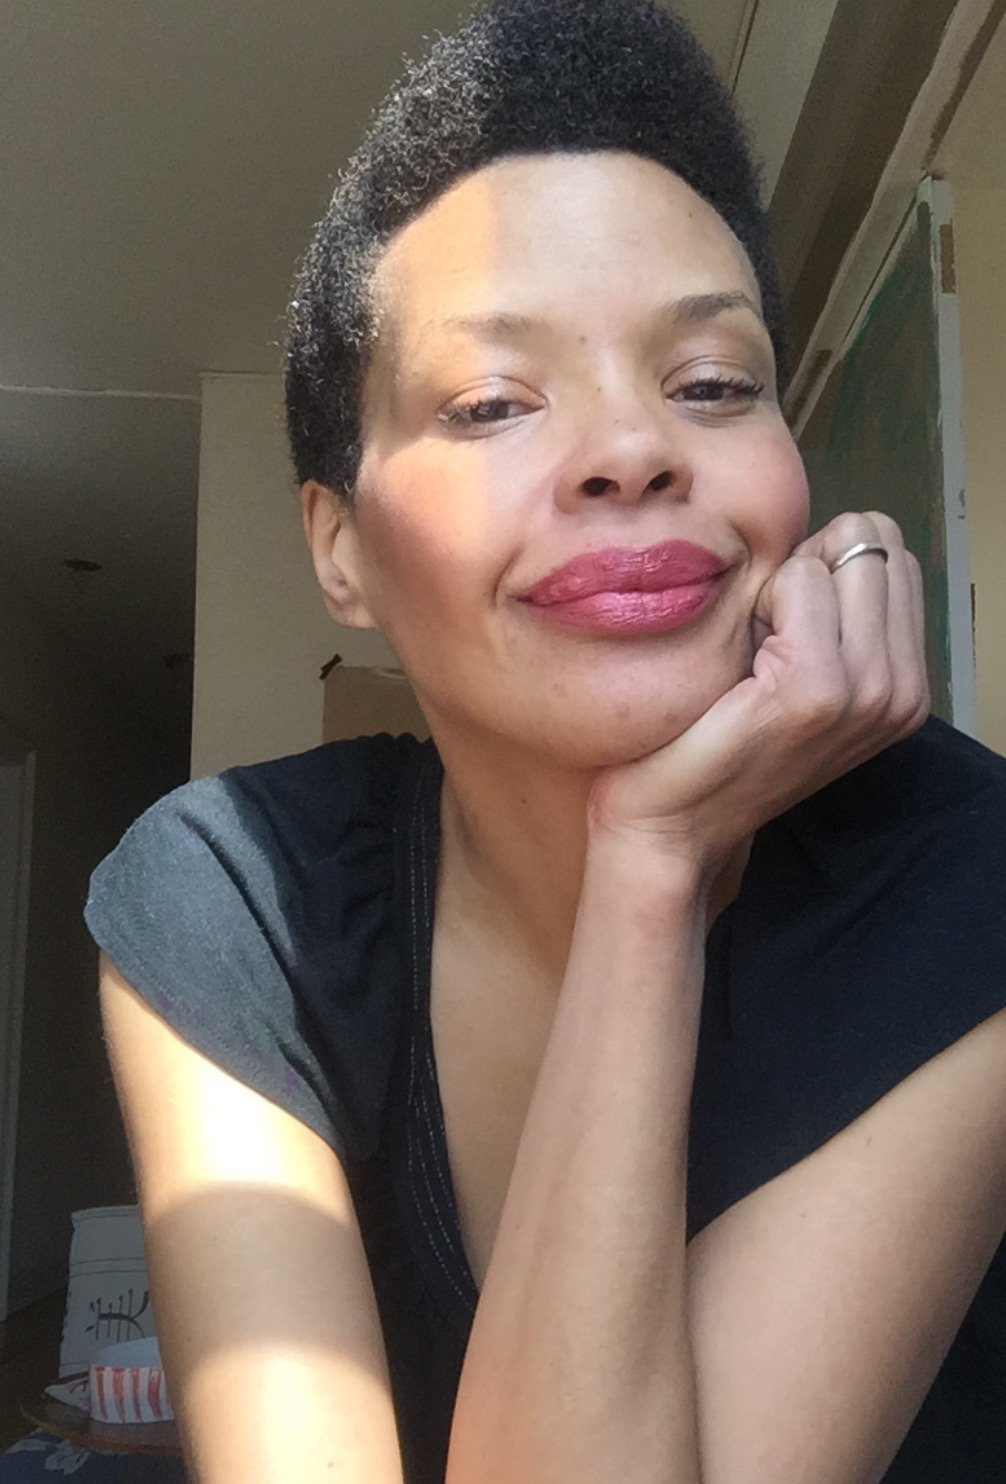 Sanaa Lathan Goes Beyond Natural With Her New Baldie